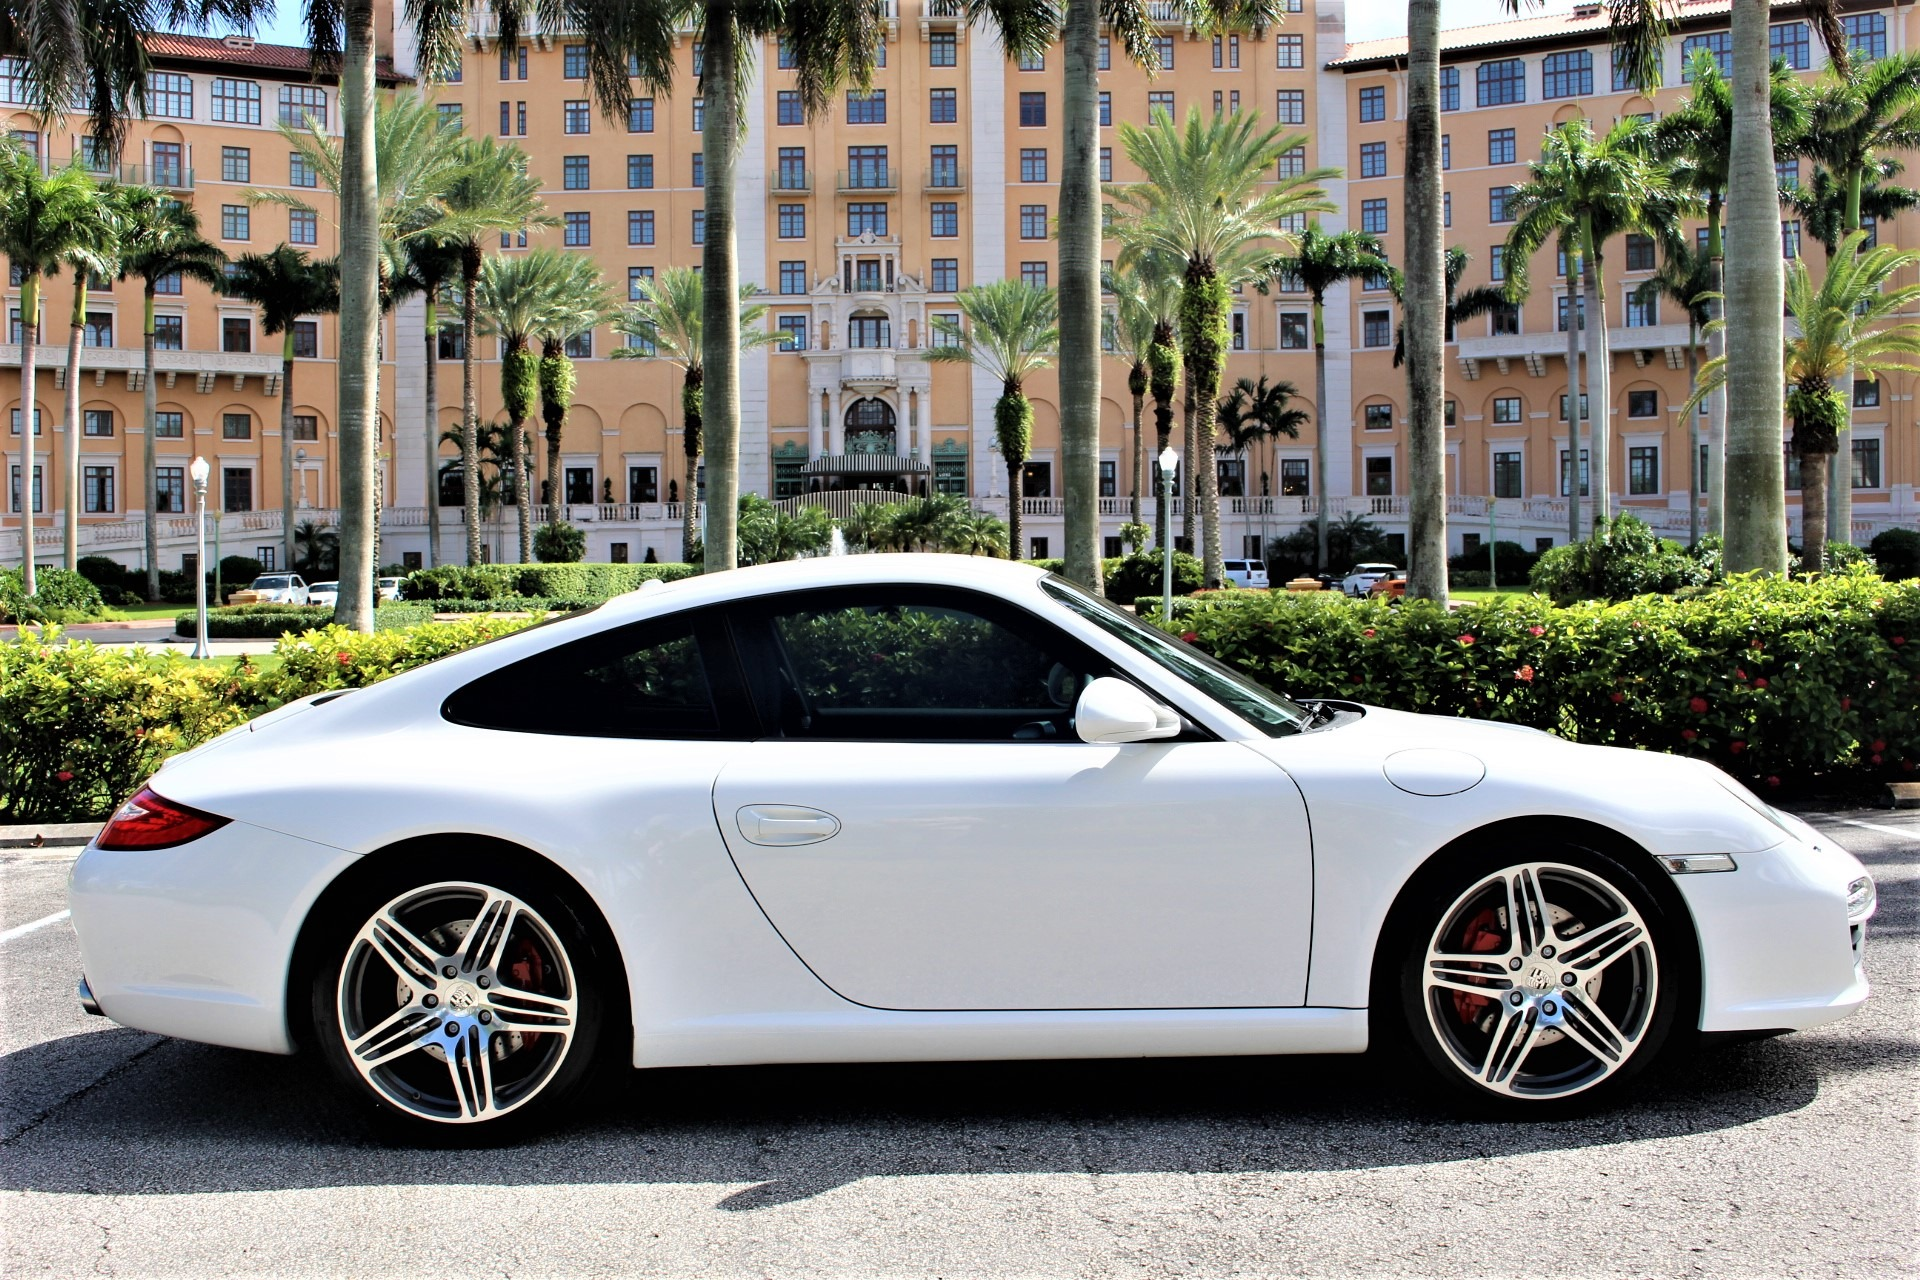 Used 2011 Porsche 911 Carrera S for sale Sold at The Gables Sports Cars in Miami FL 33146 1